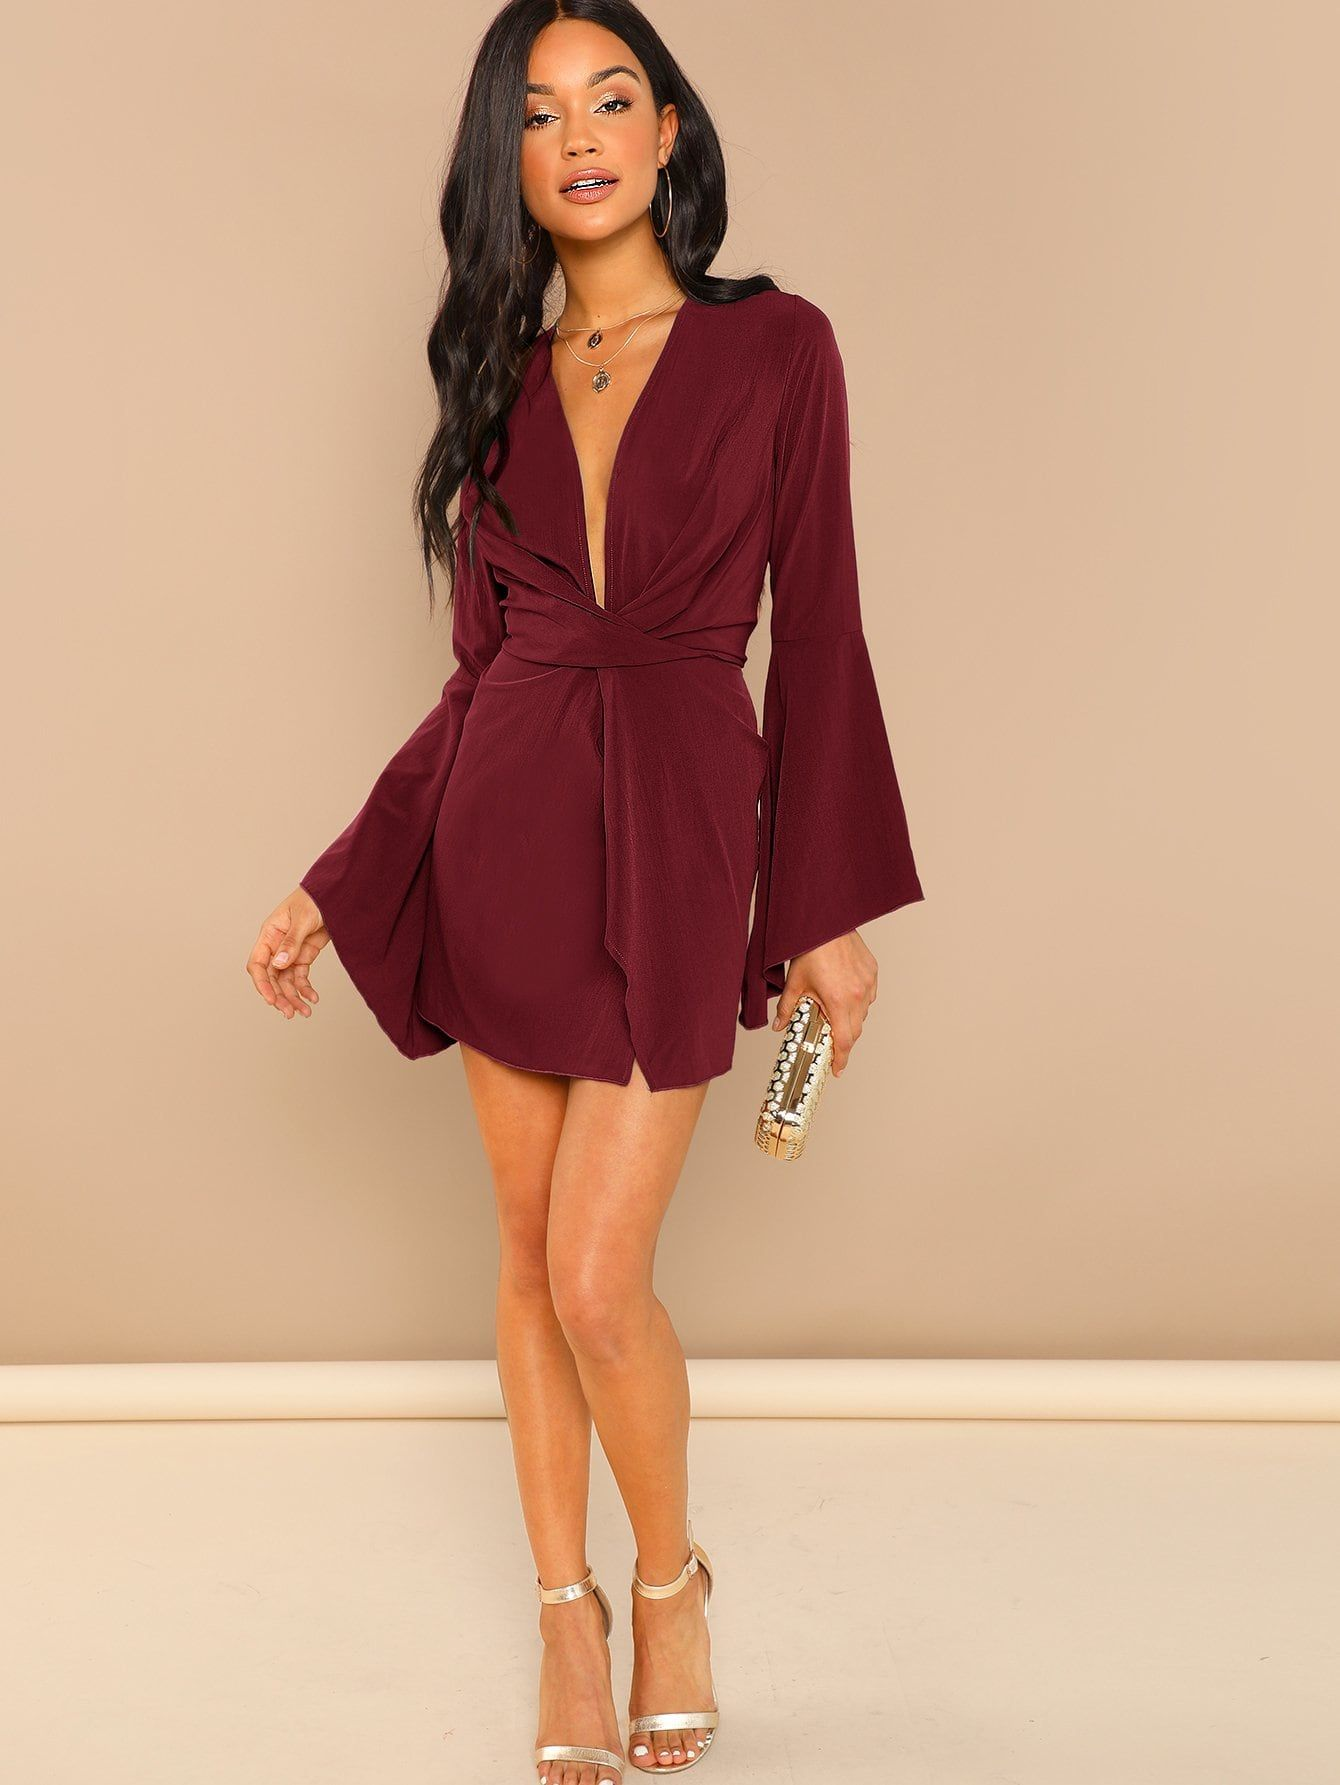 4758c0a7f5dc Party Plain Fit and Flare Deep V Neck Long Sleeve Flounce Sleeve Natural  Burgundy Short Length Plunge Neck Bell Sleeve Dress